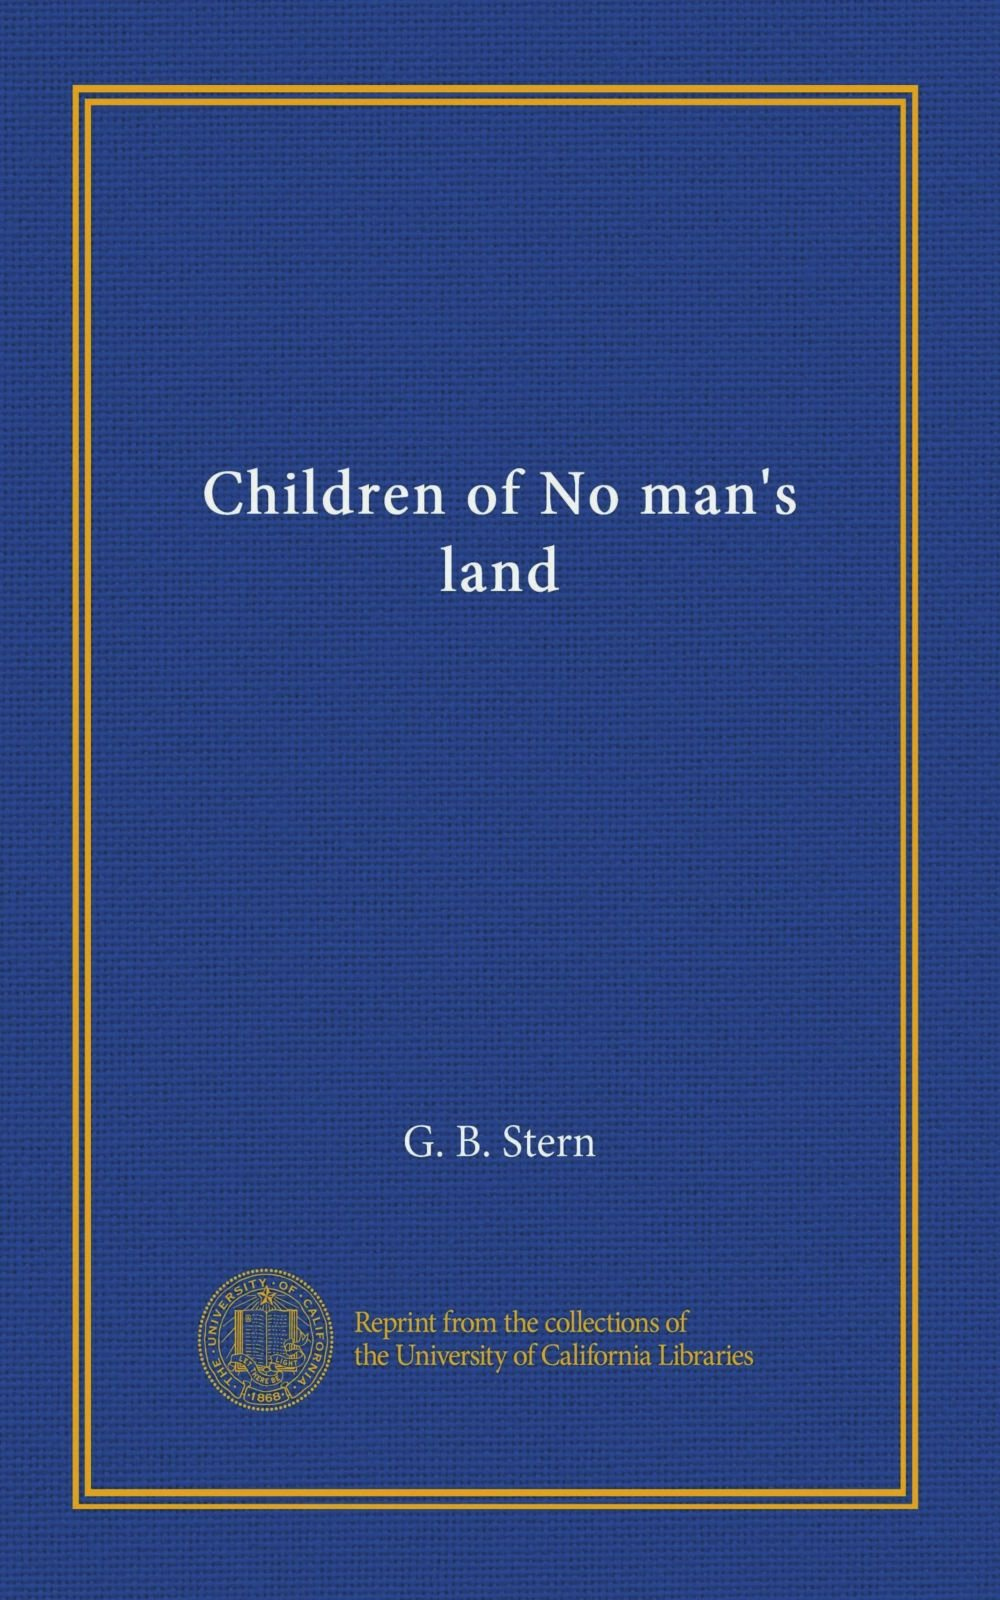 Children of No man's land pdf